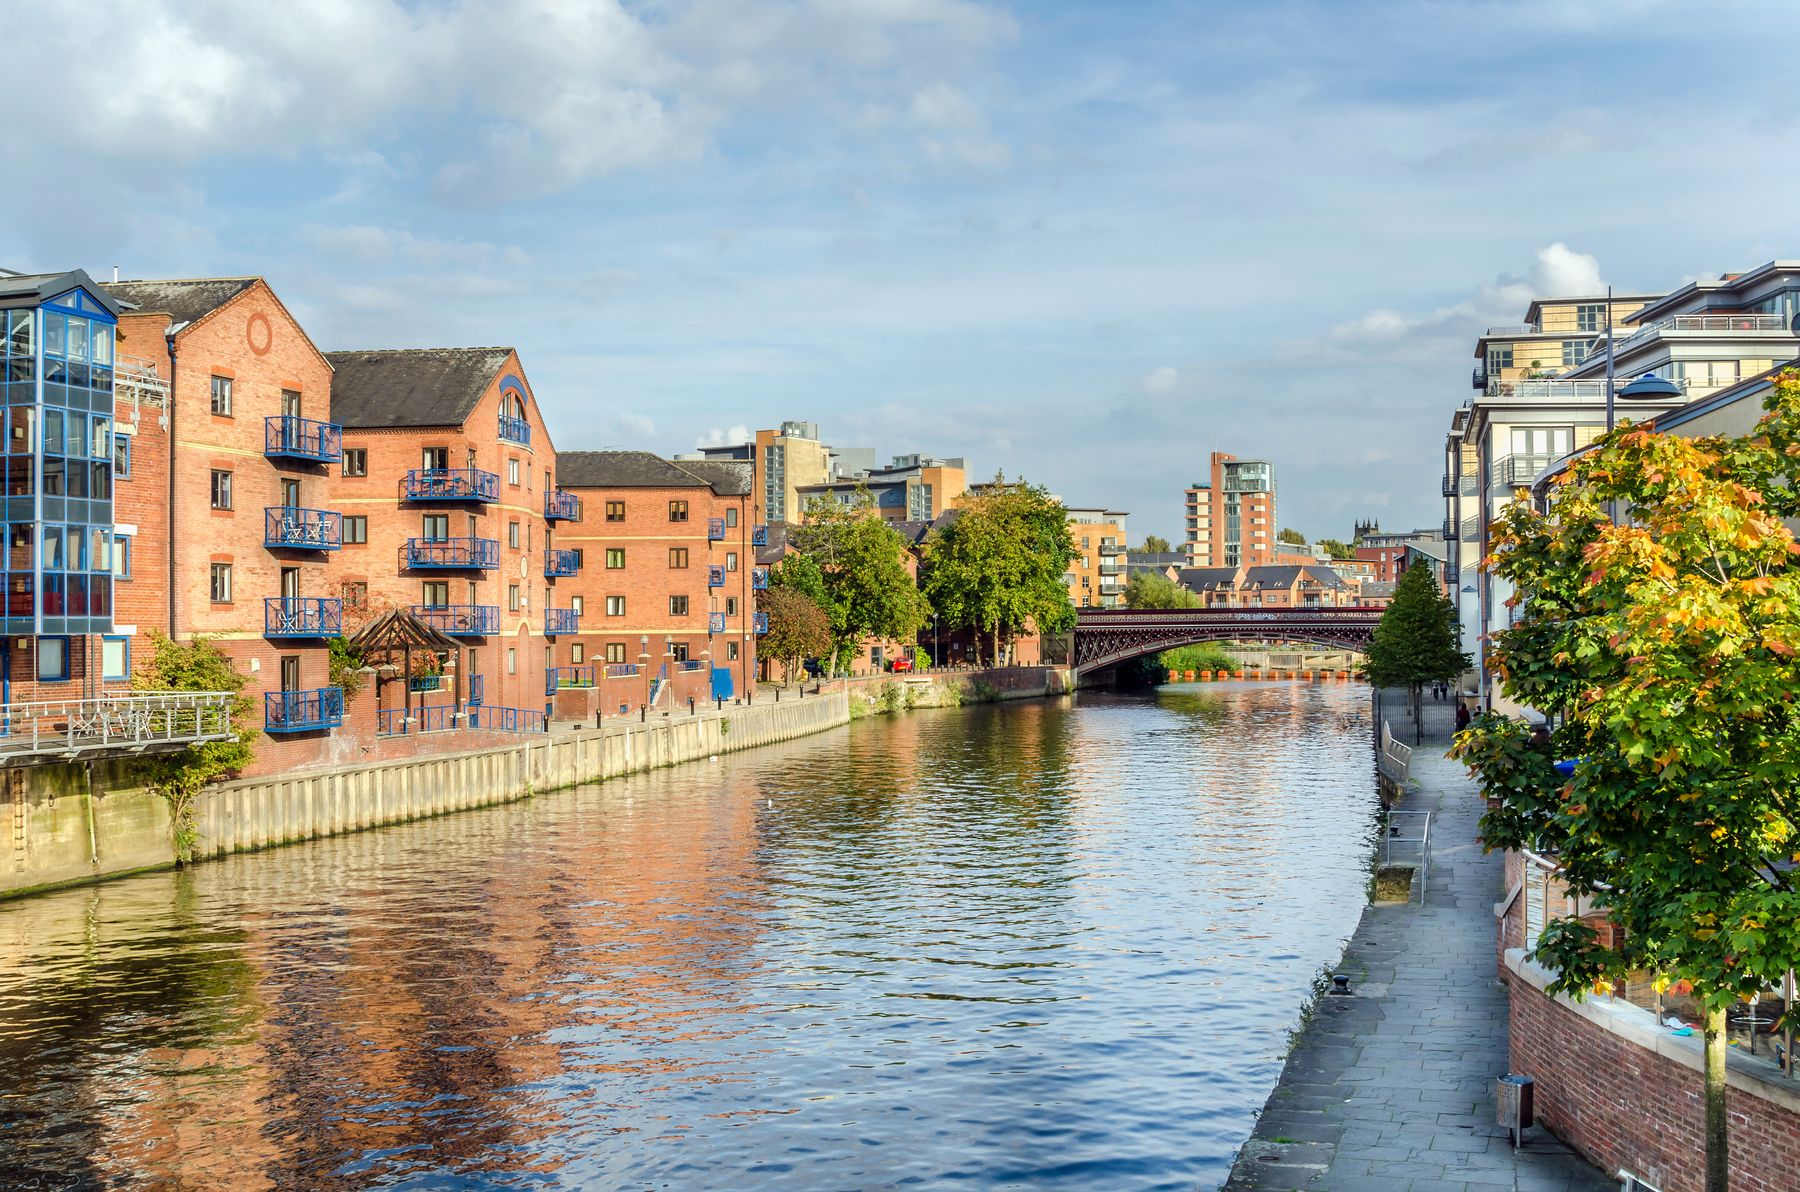 View of Brewery Wharf on Leeds Waterfront